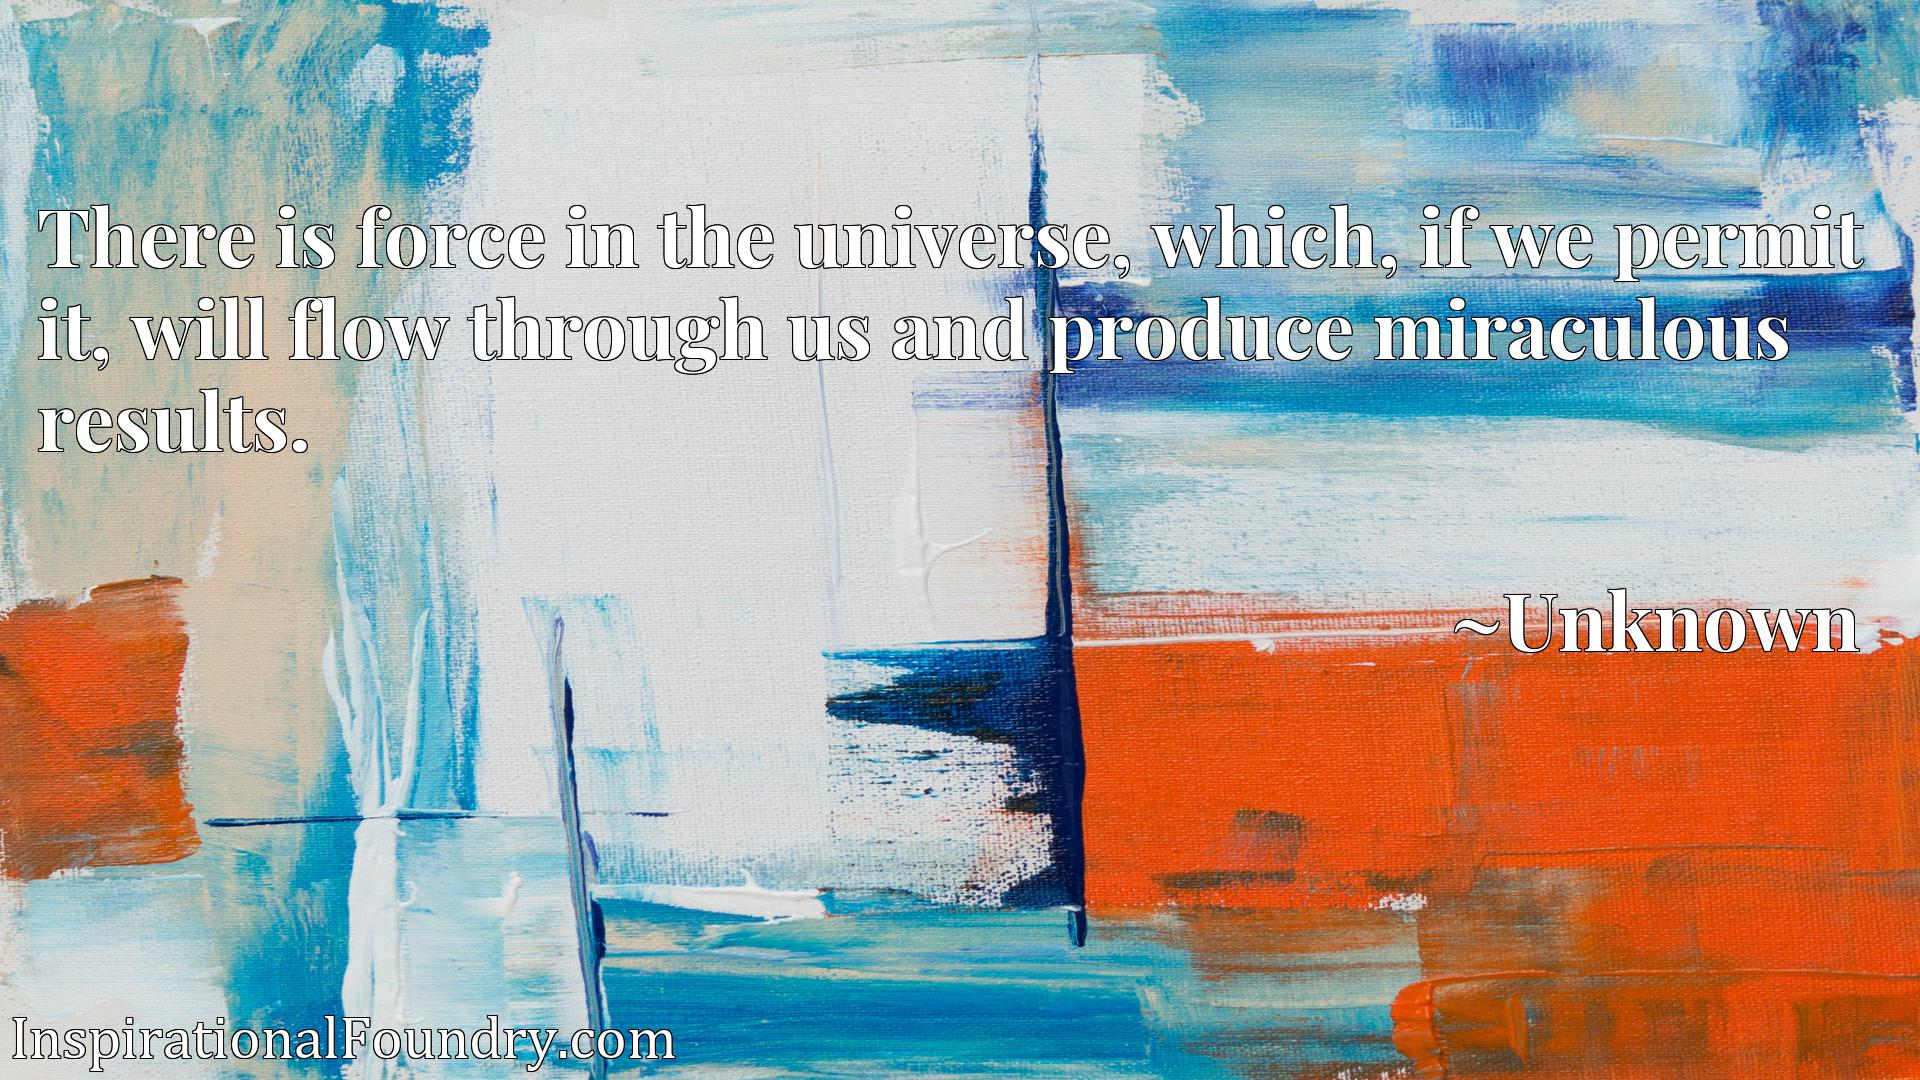 There is force in the universe, which, if we permit it, will flow through us and produce miraculous results.